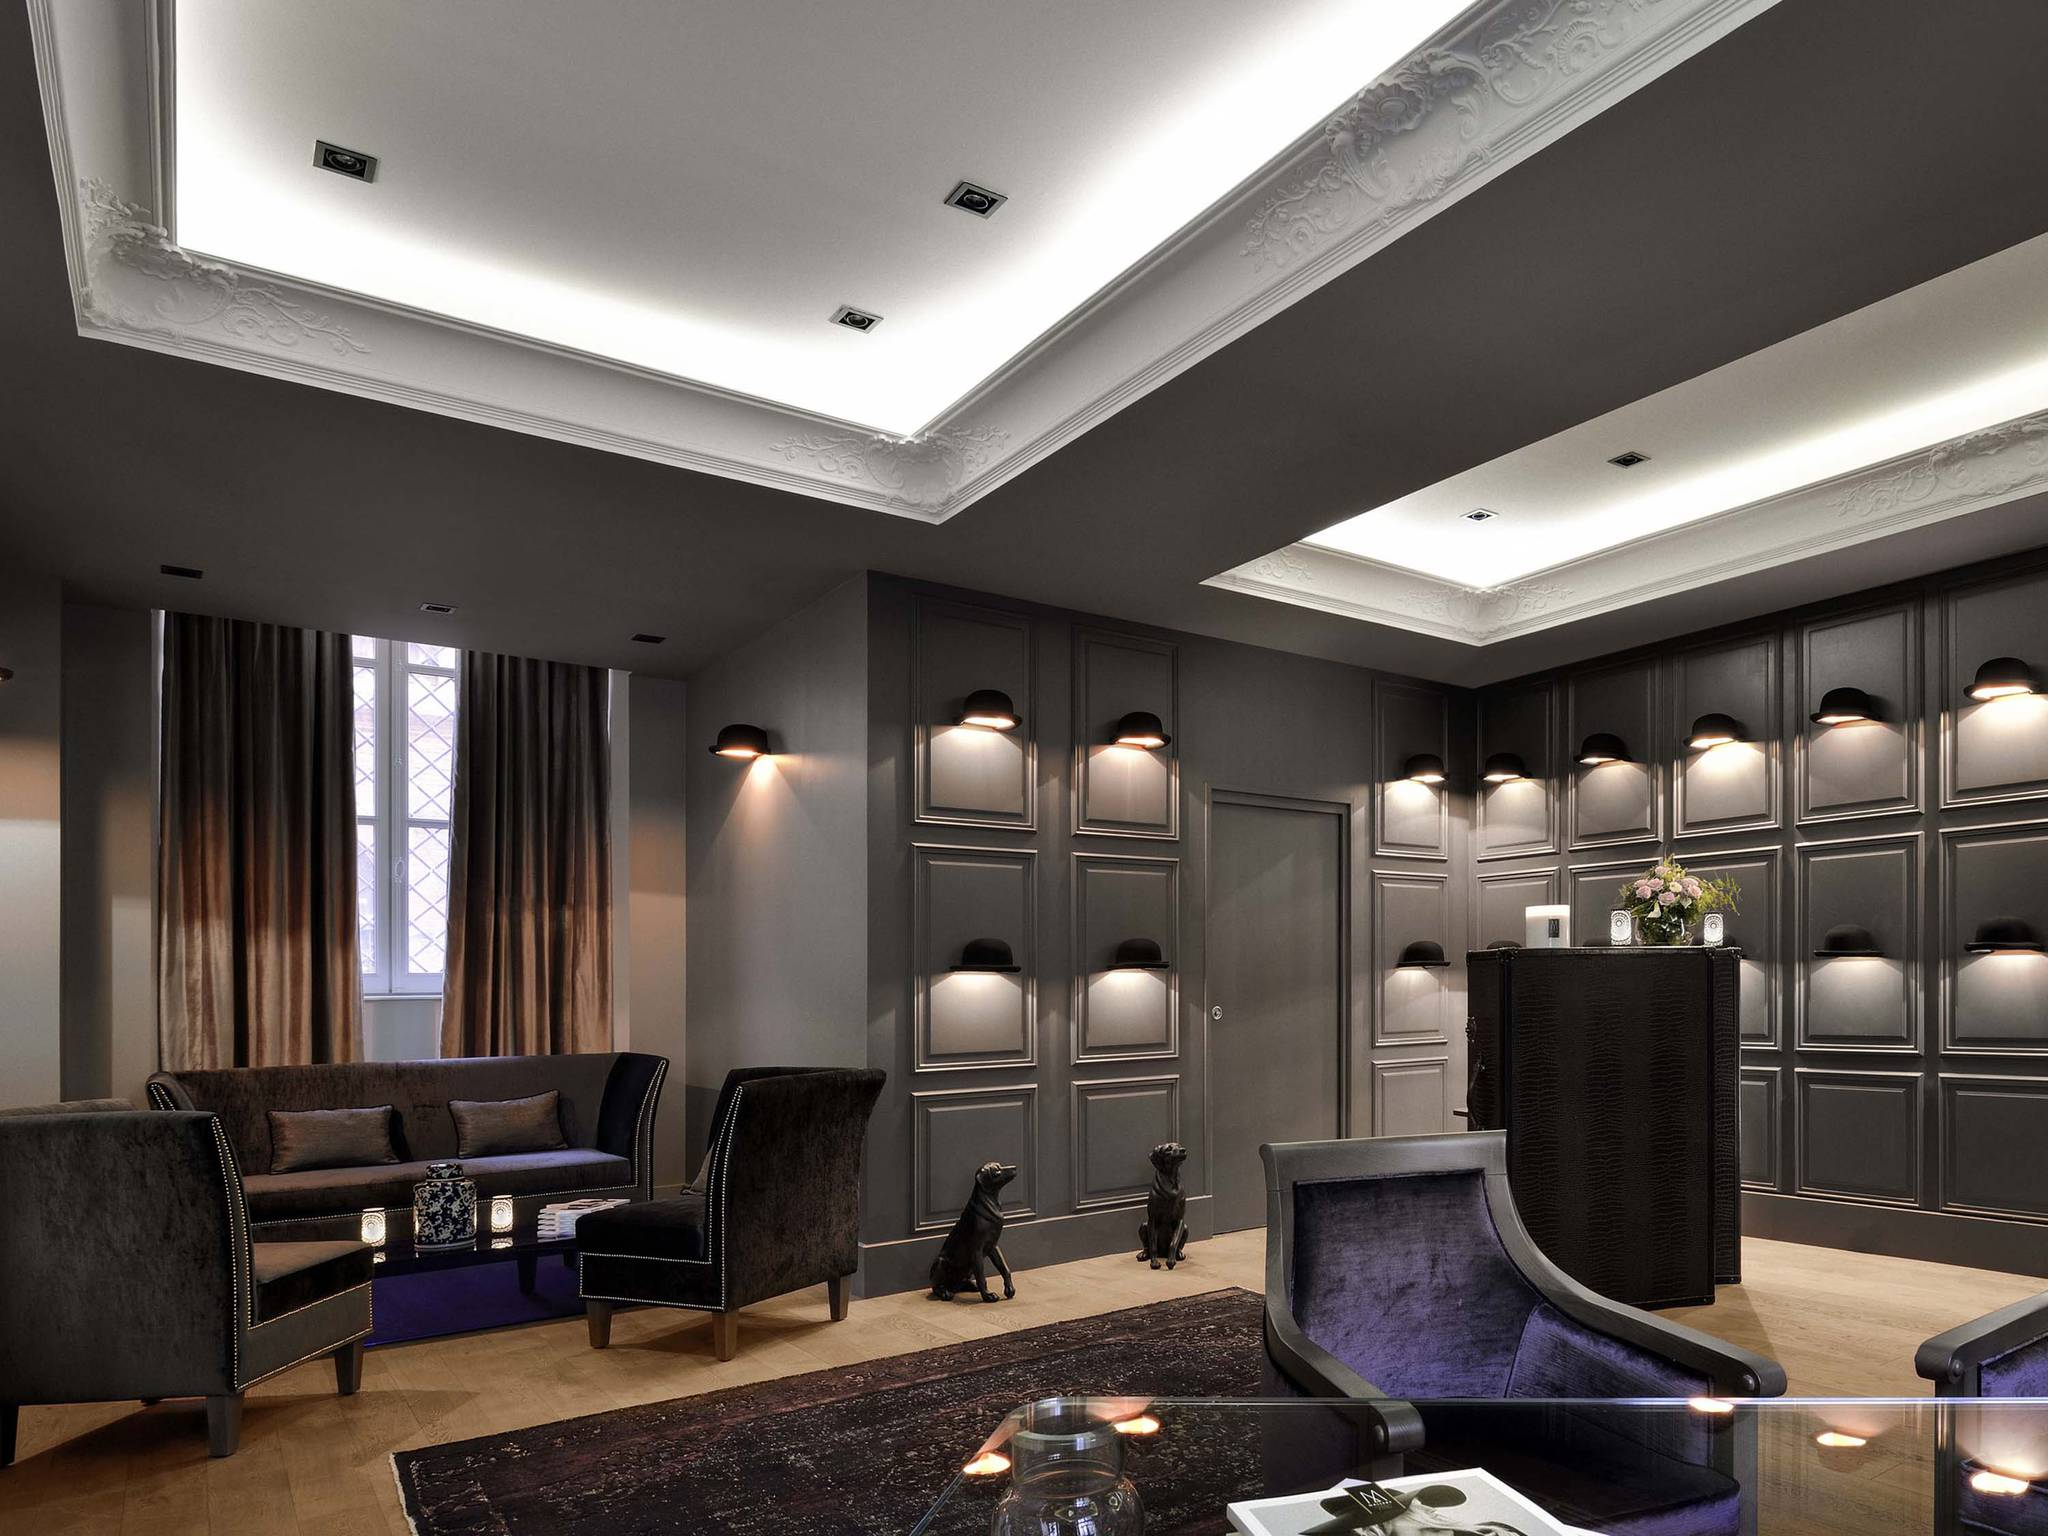 hotel in toulouse la cour des consuls hotel spa toulouse mgallery by sofitel. Black Bedroom Furniture Sets. Home Design Ideas